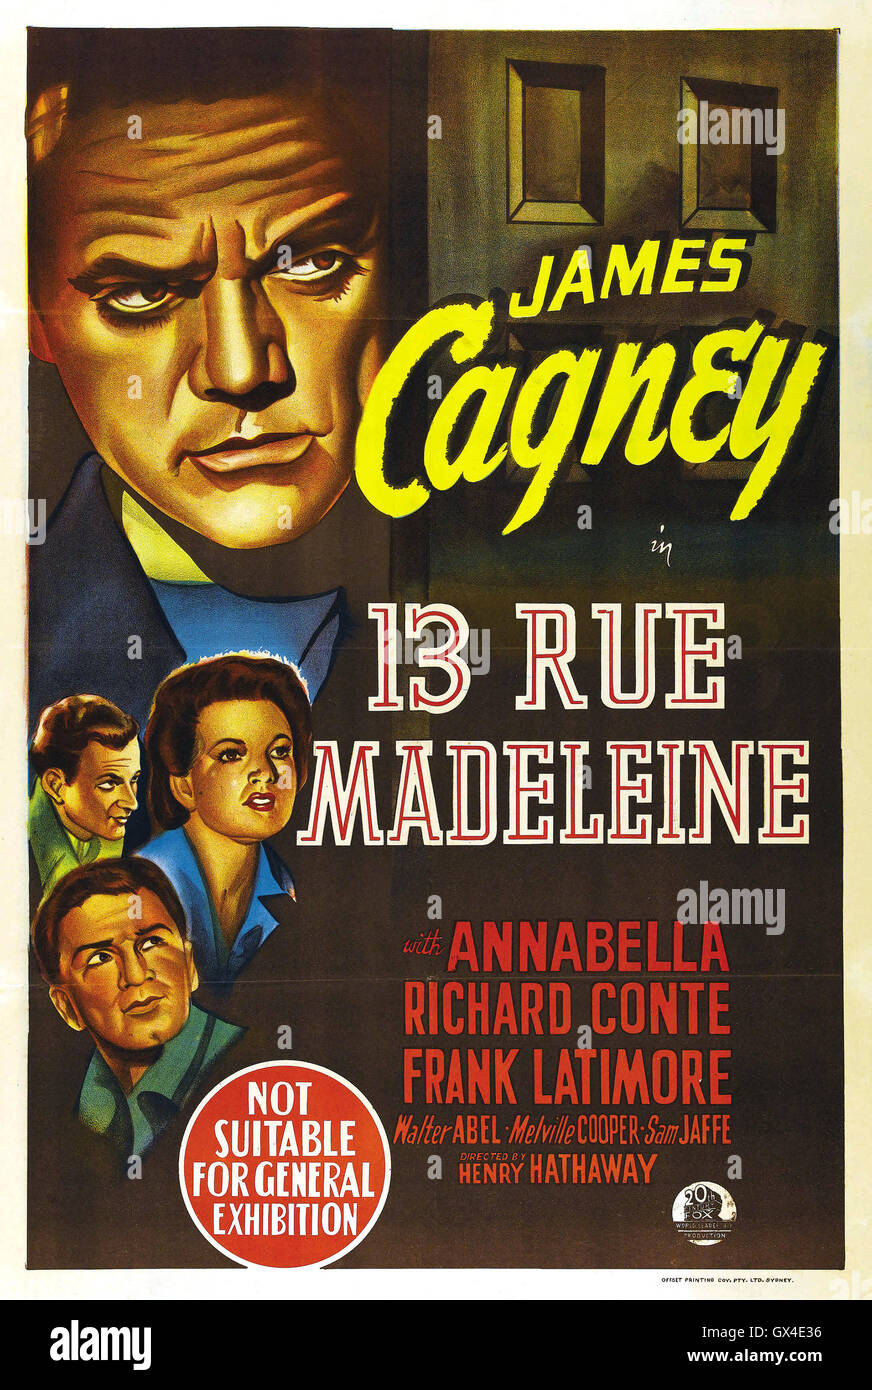 13 RUE MADELEINE 1947  20th Century Fox film with James Cagney - Stock Image